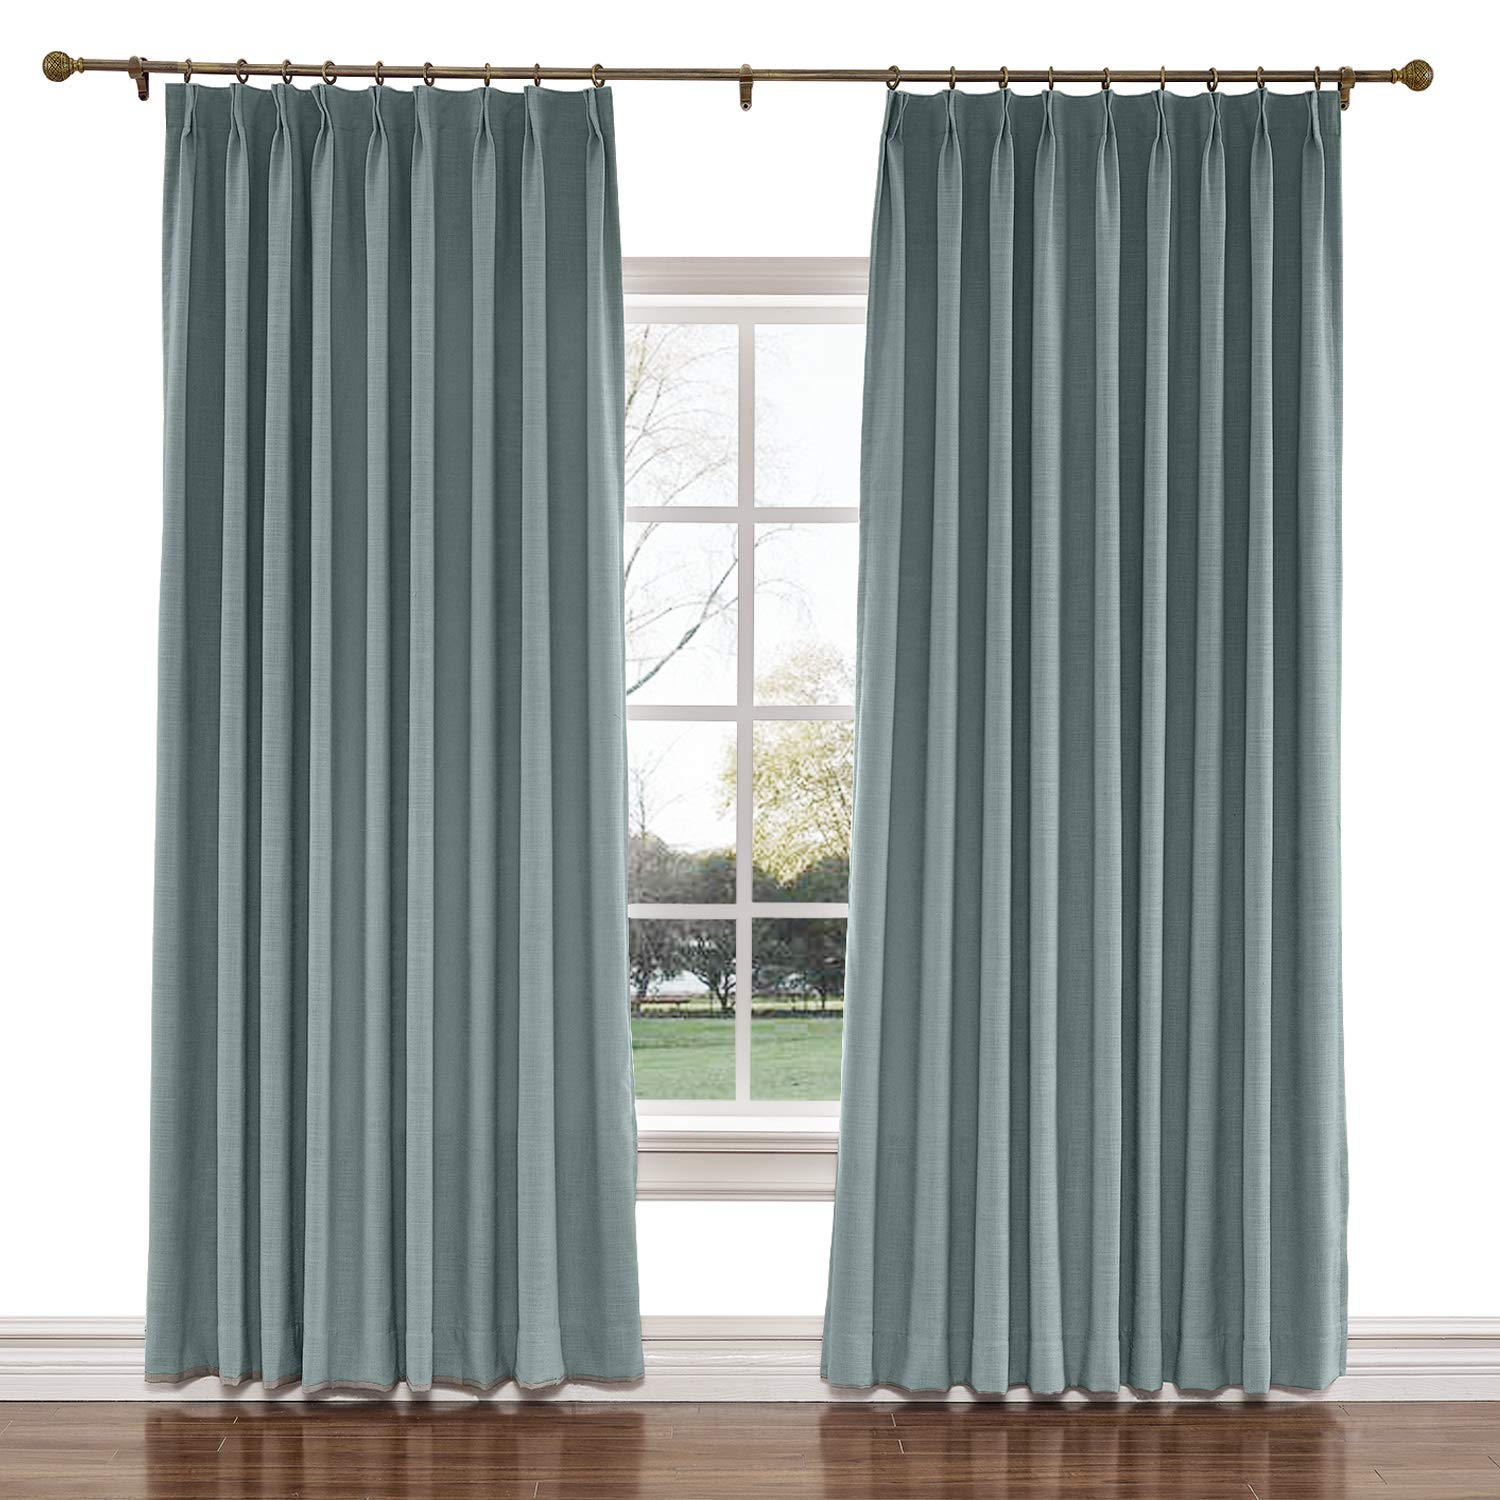 twopages 100 w x 96 l inch pinch pleat darkening drapes faux linen curtains with blackout lining drapery panel for living room bedroom meetingroom